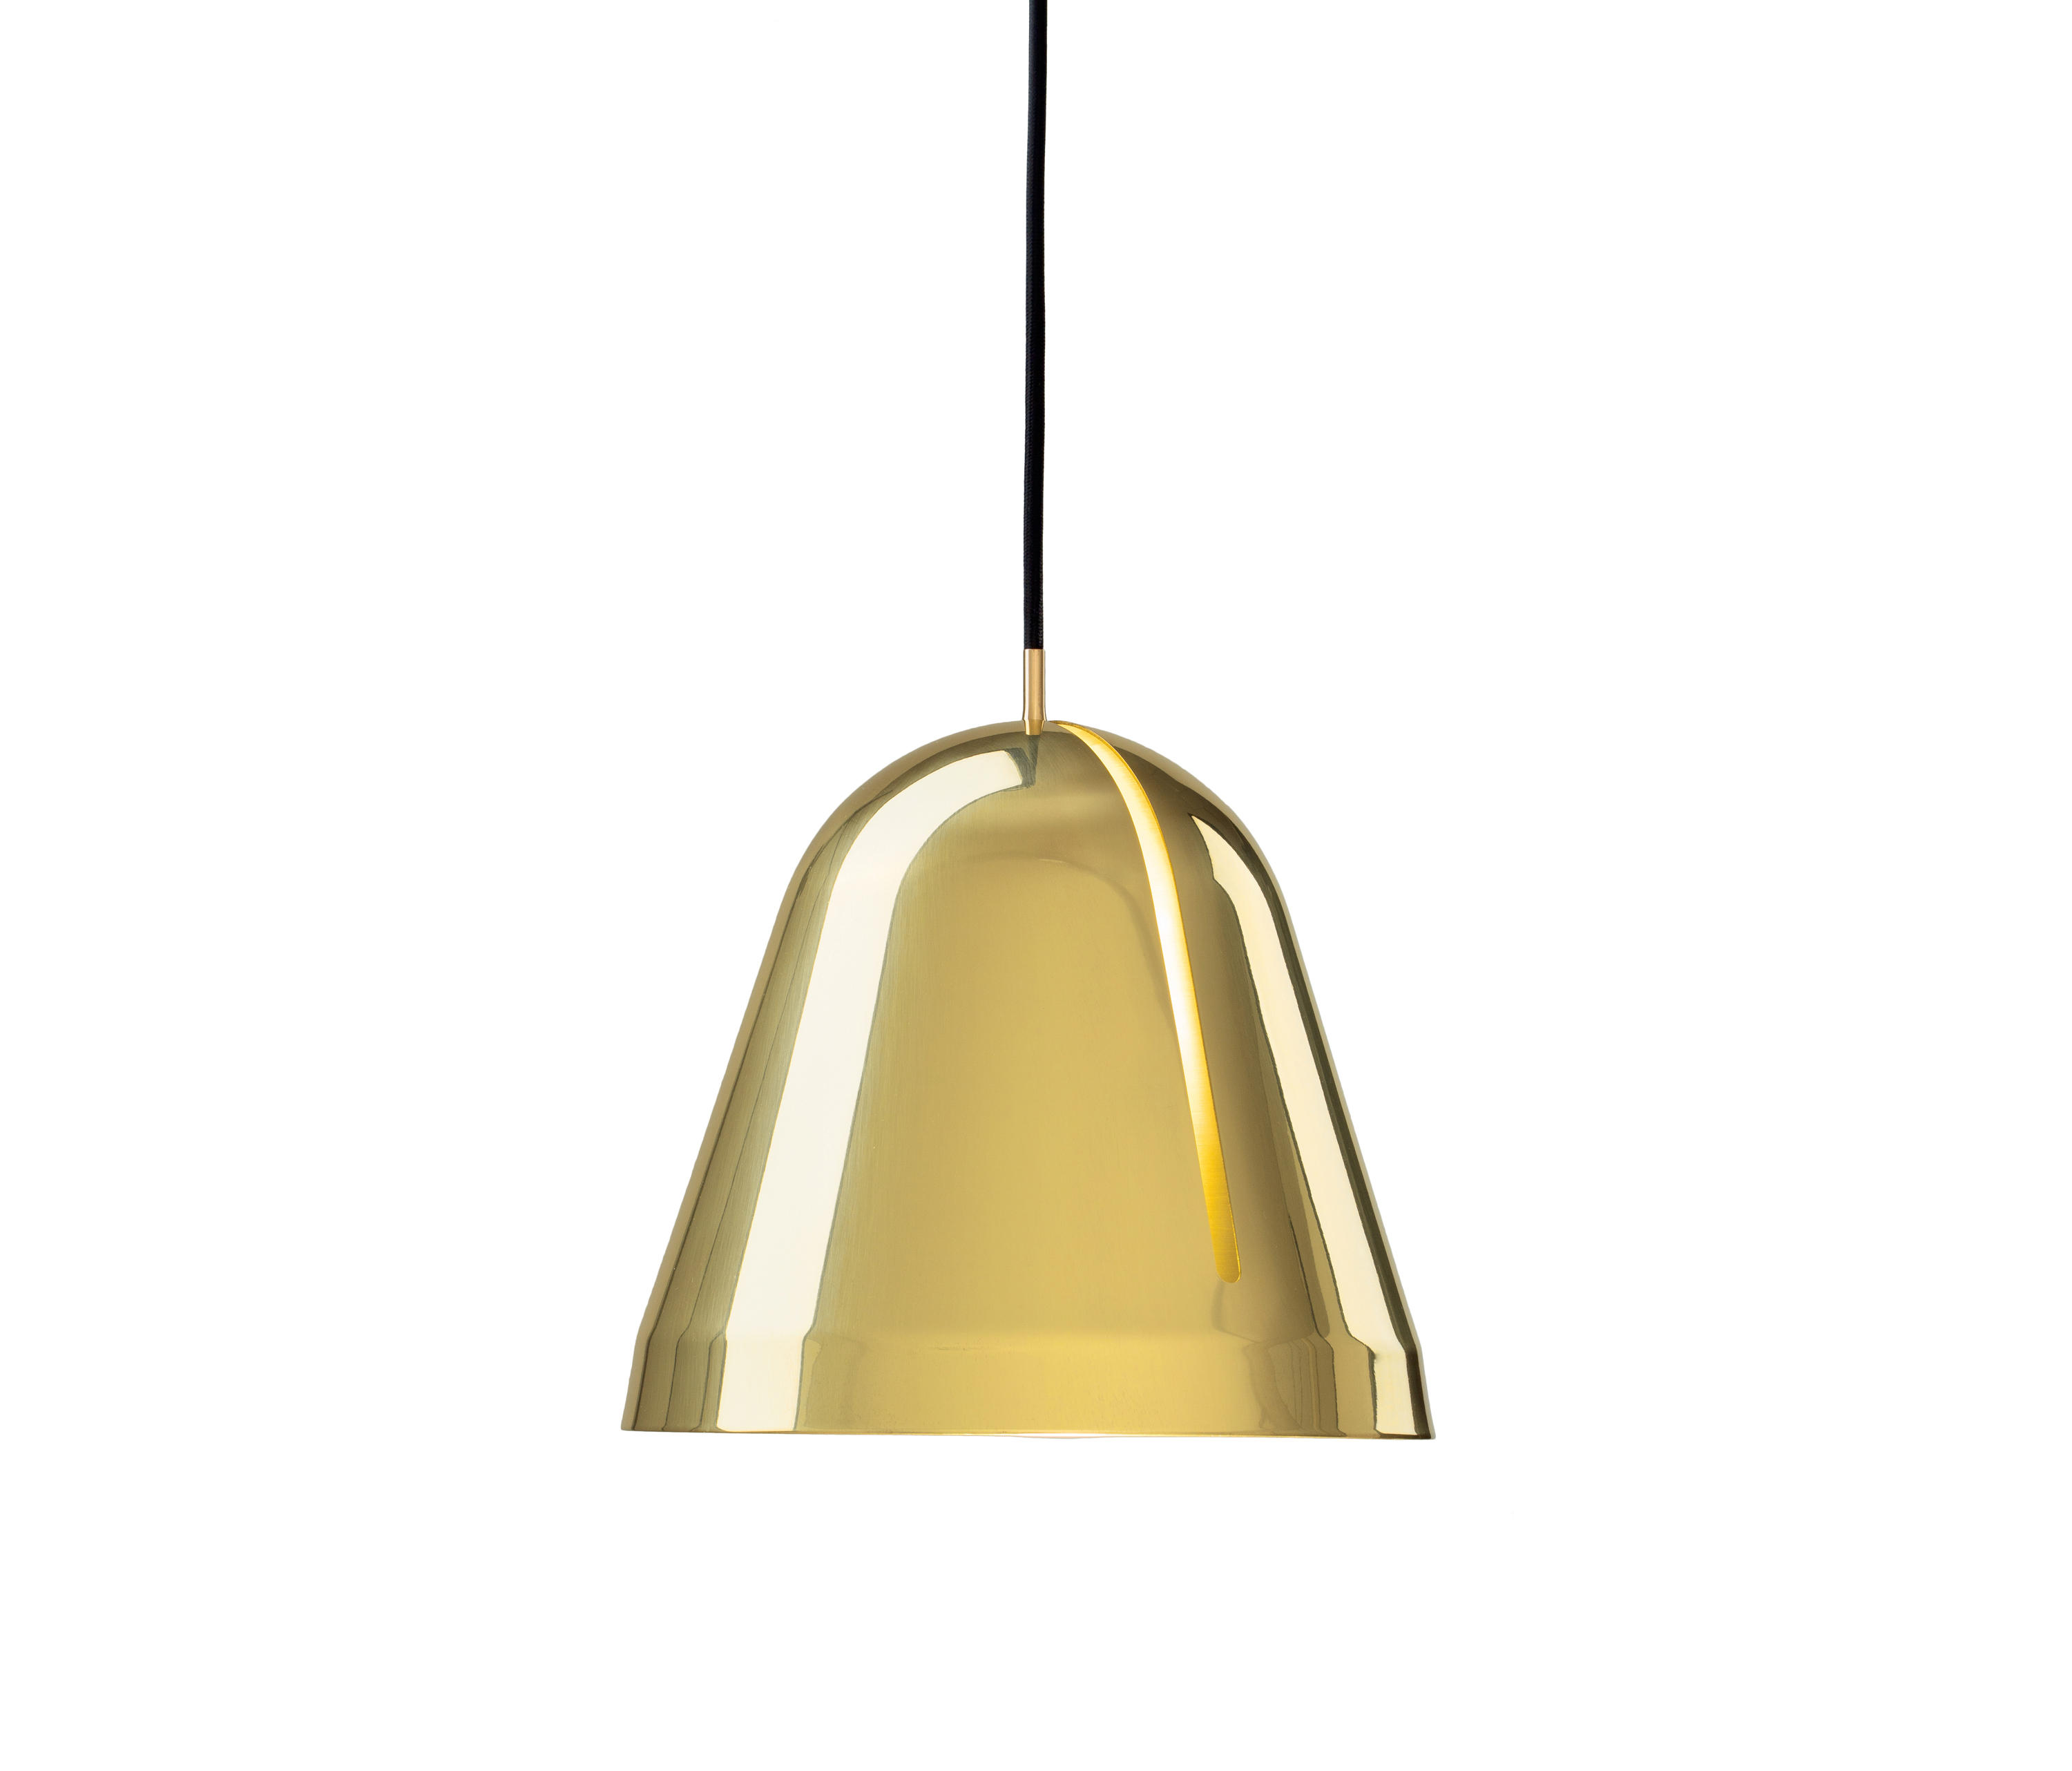 lighting press hol zoom to the light drag lights brass pendants hold pan pendant bhs image p and all ceiling